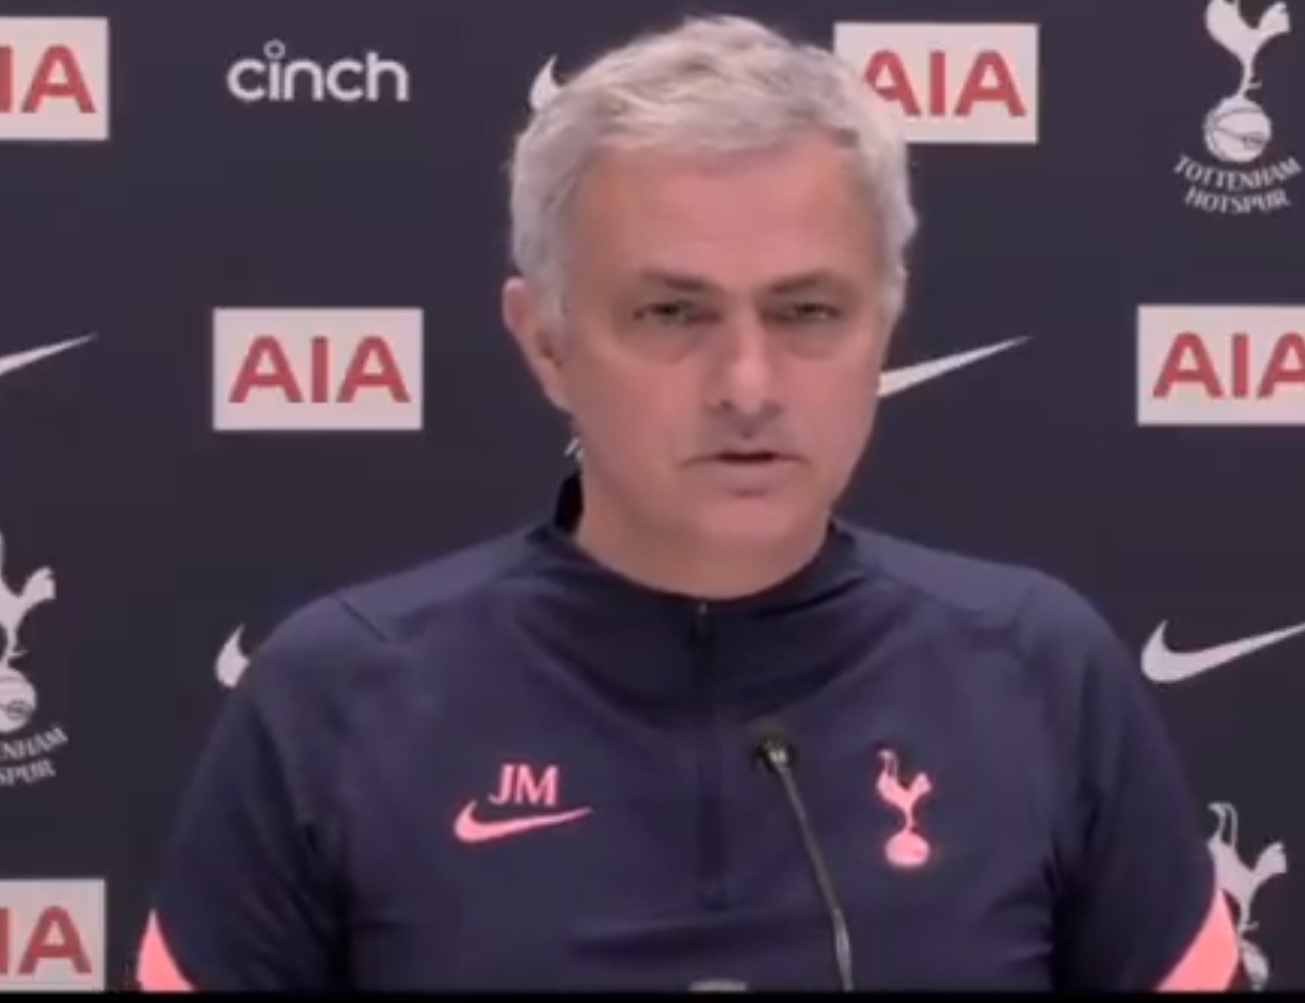 Mourinho weighs in on Liverpool signing a centre-back debate